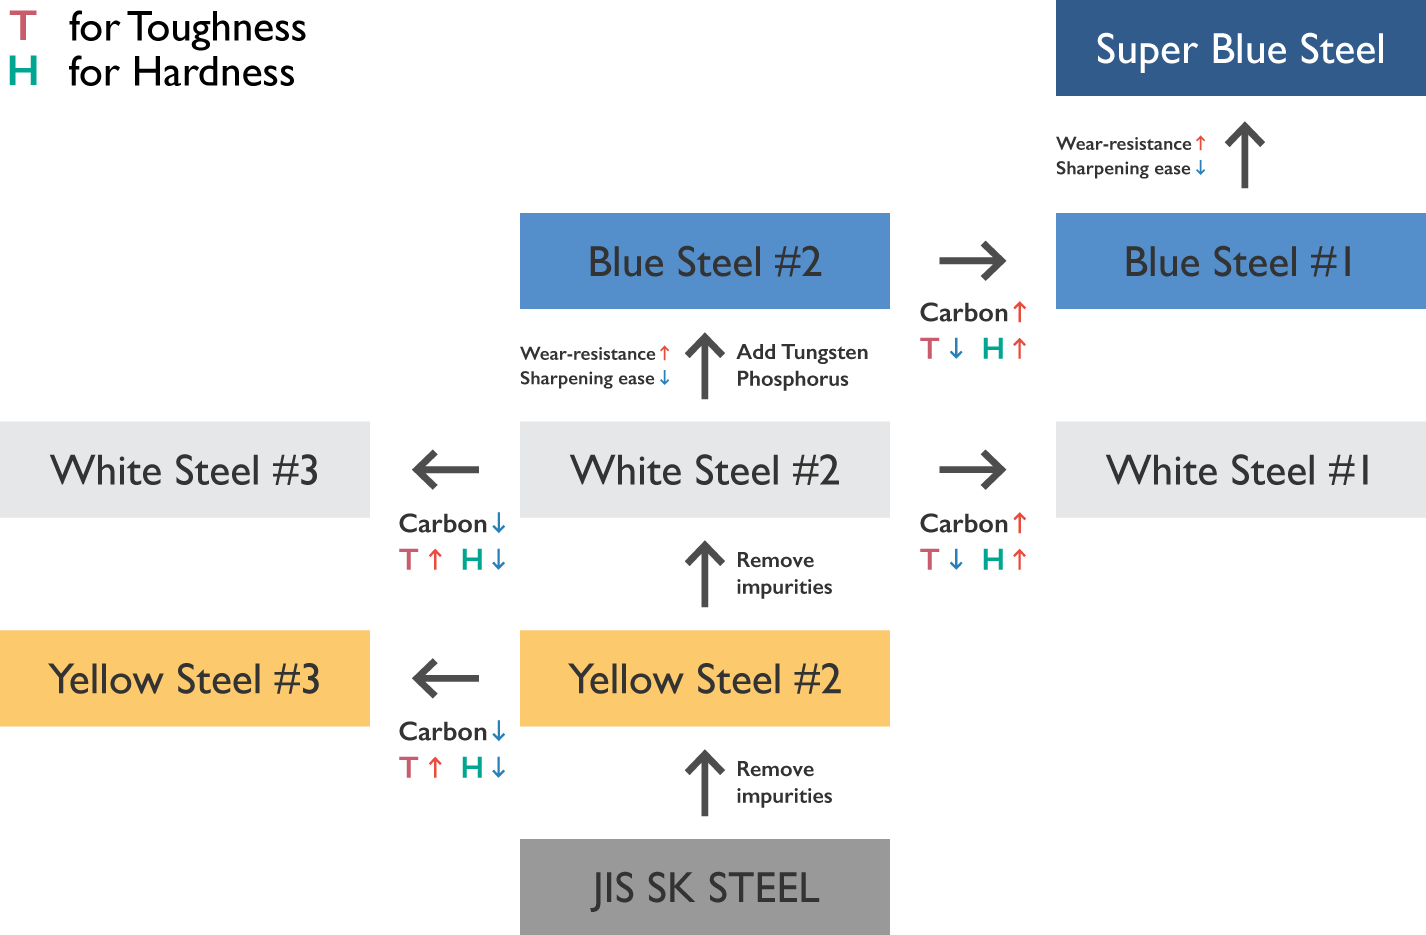 The figure showing the differece of white steel, yellow steel, blue steel, and super blue steel of Japanese knives